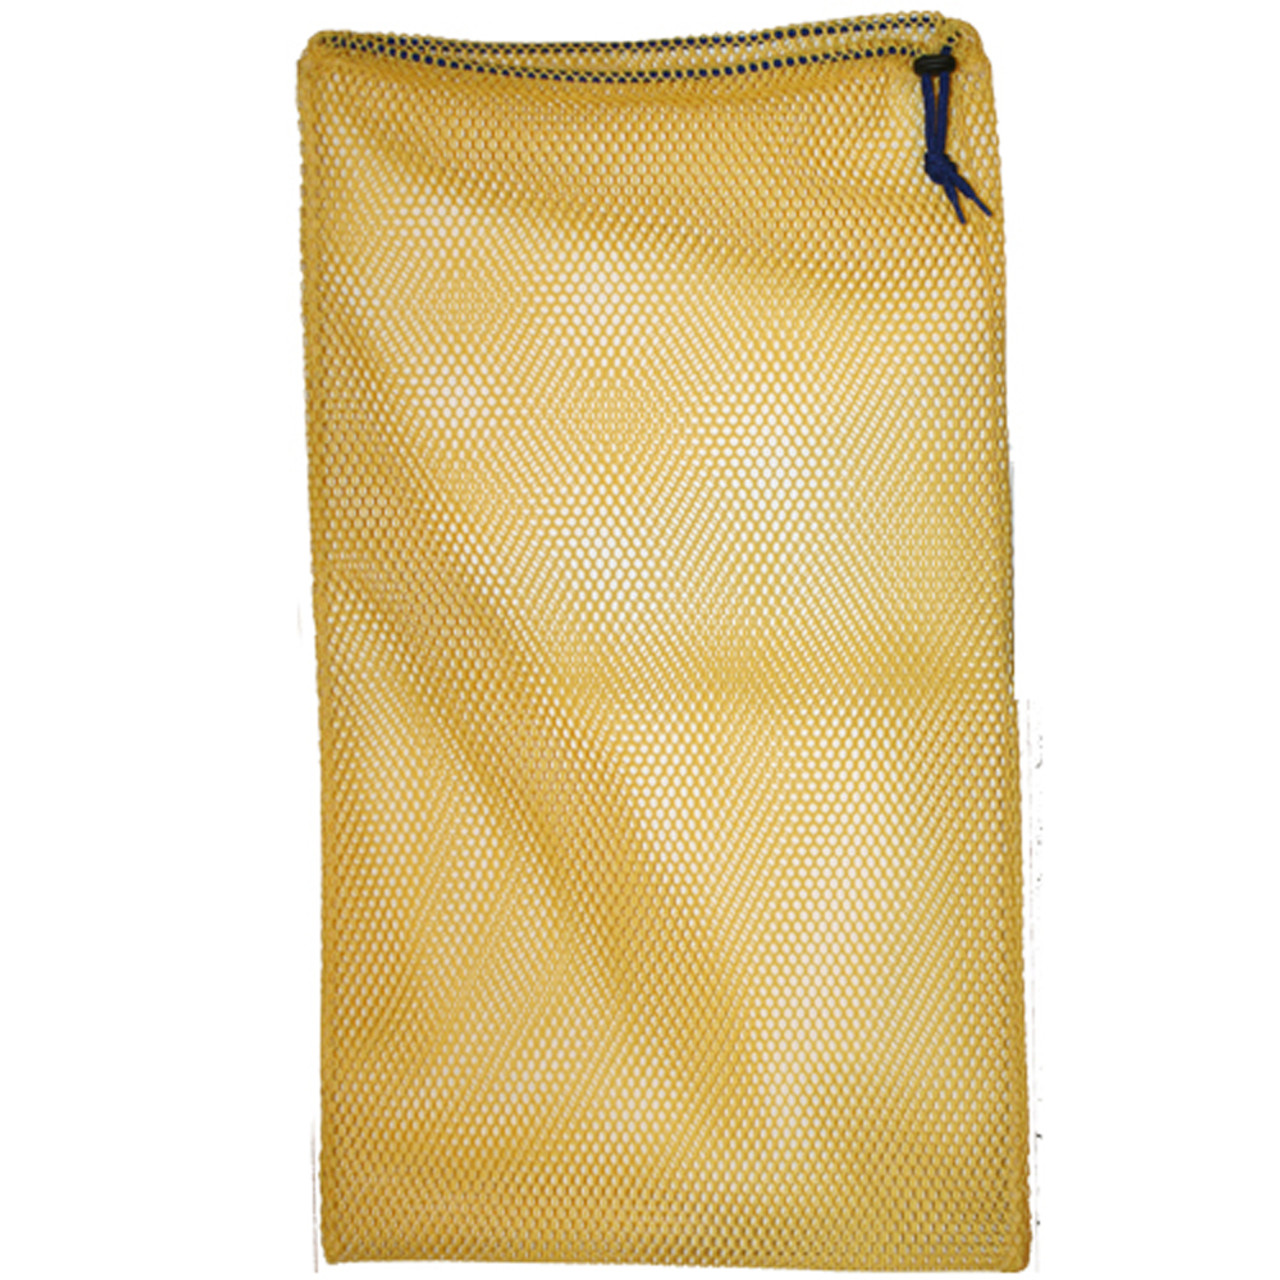 Nylon Mesh Drawstring Bag, Medium, Approx. 18inch x 30inch